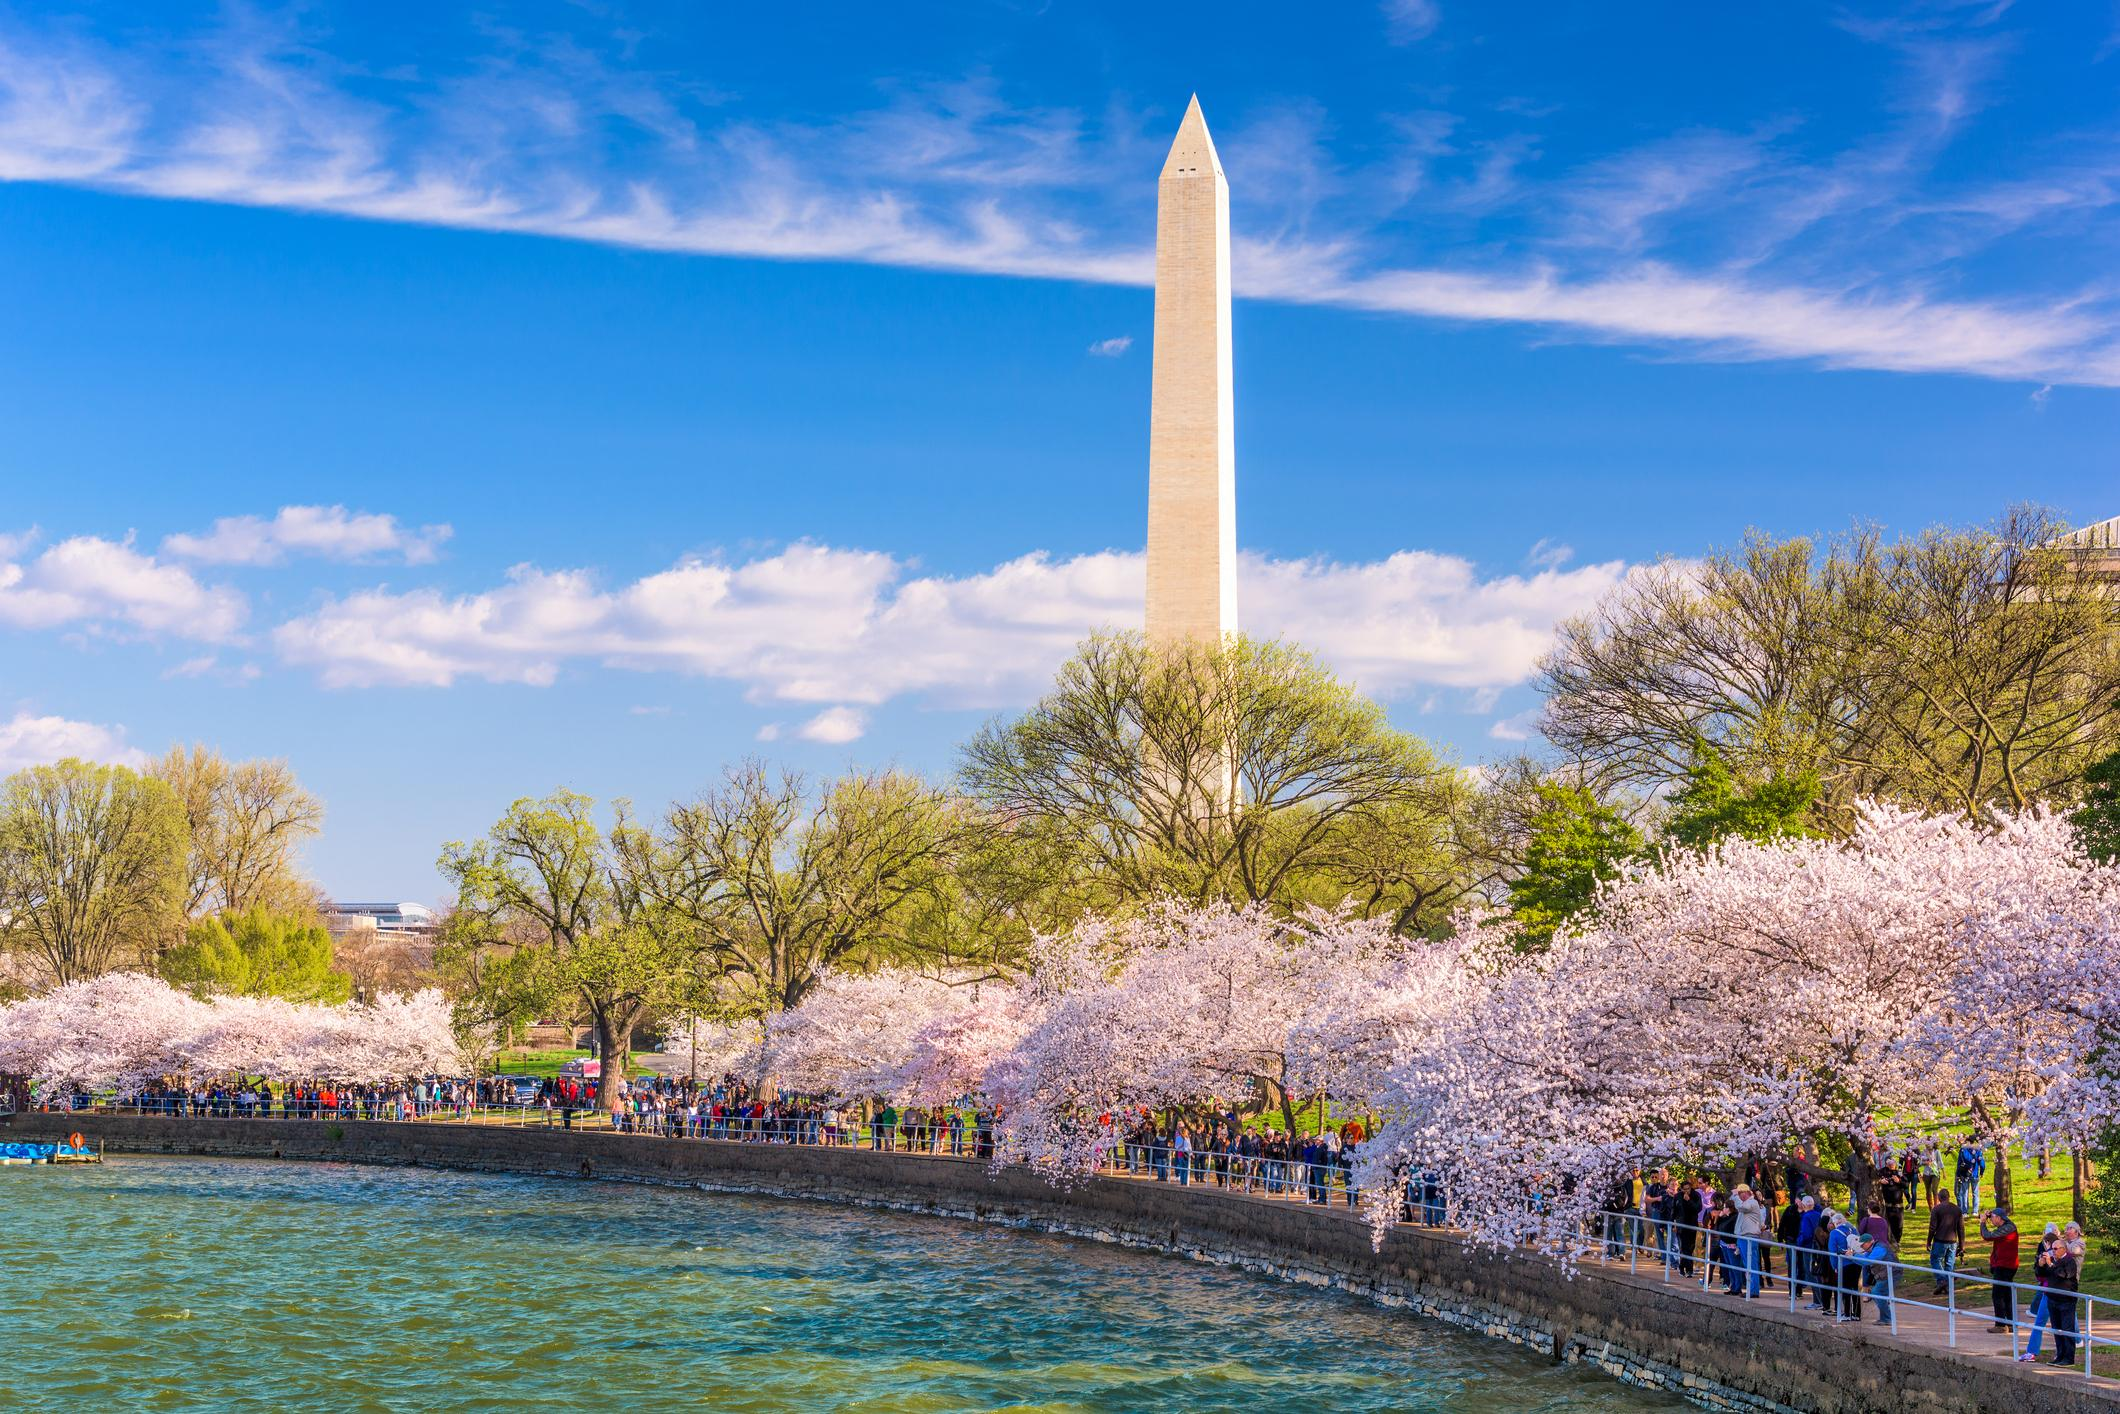 Crowds walk below cherry trees and the Washington Monument during the spring festival around the Tidal Basin.